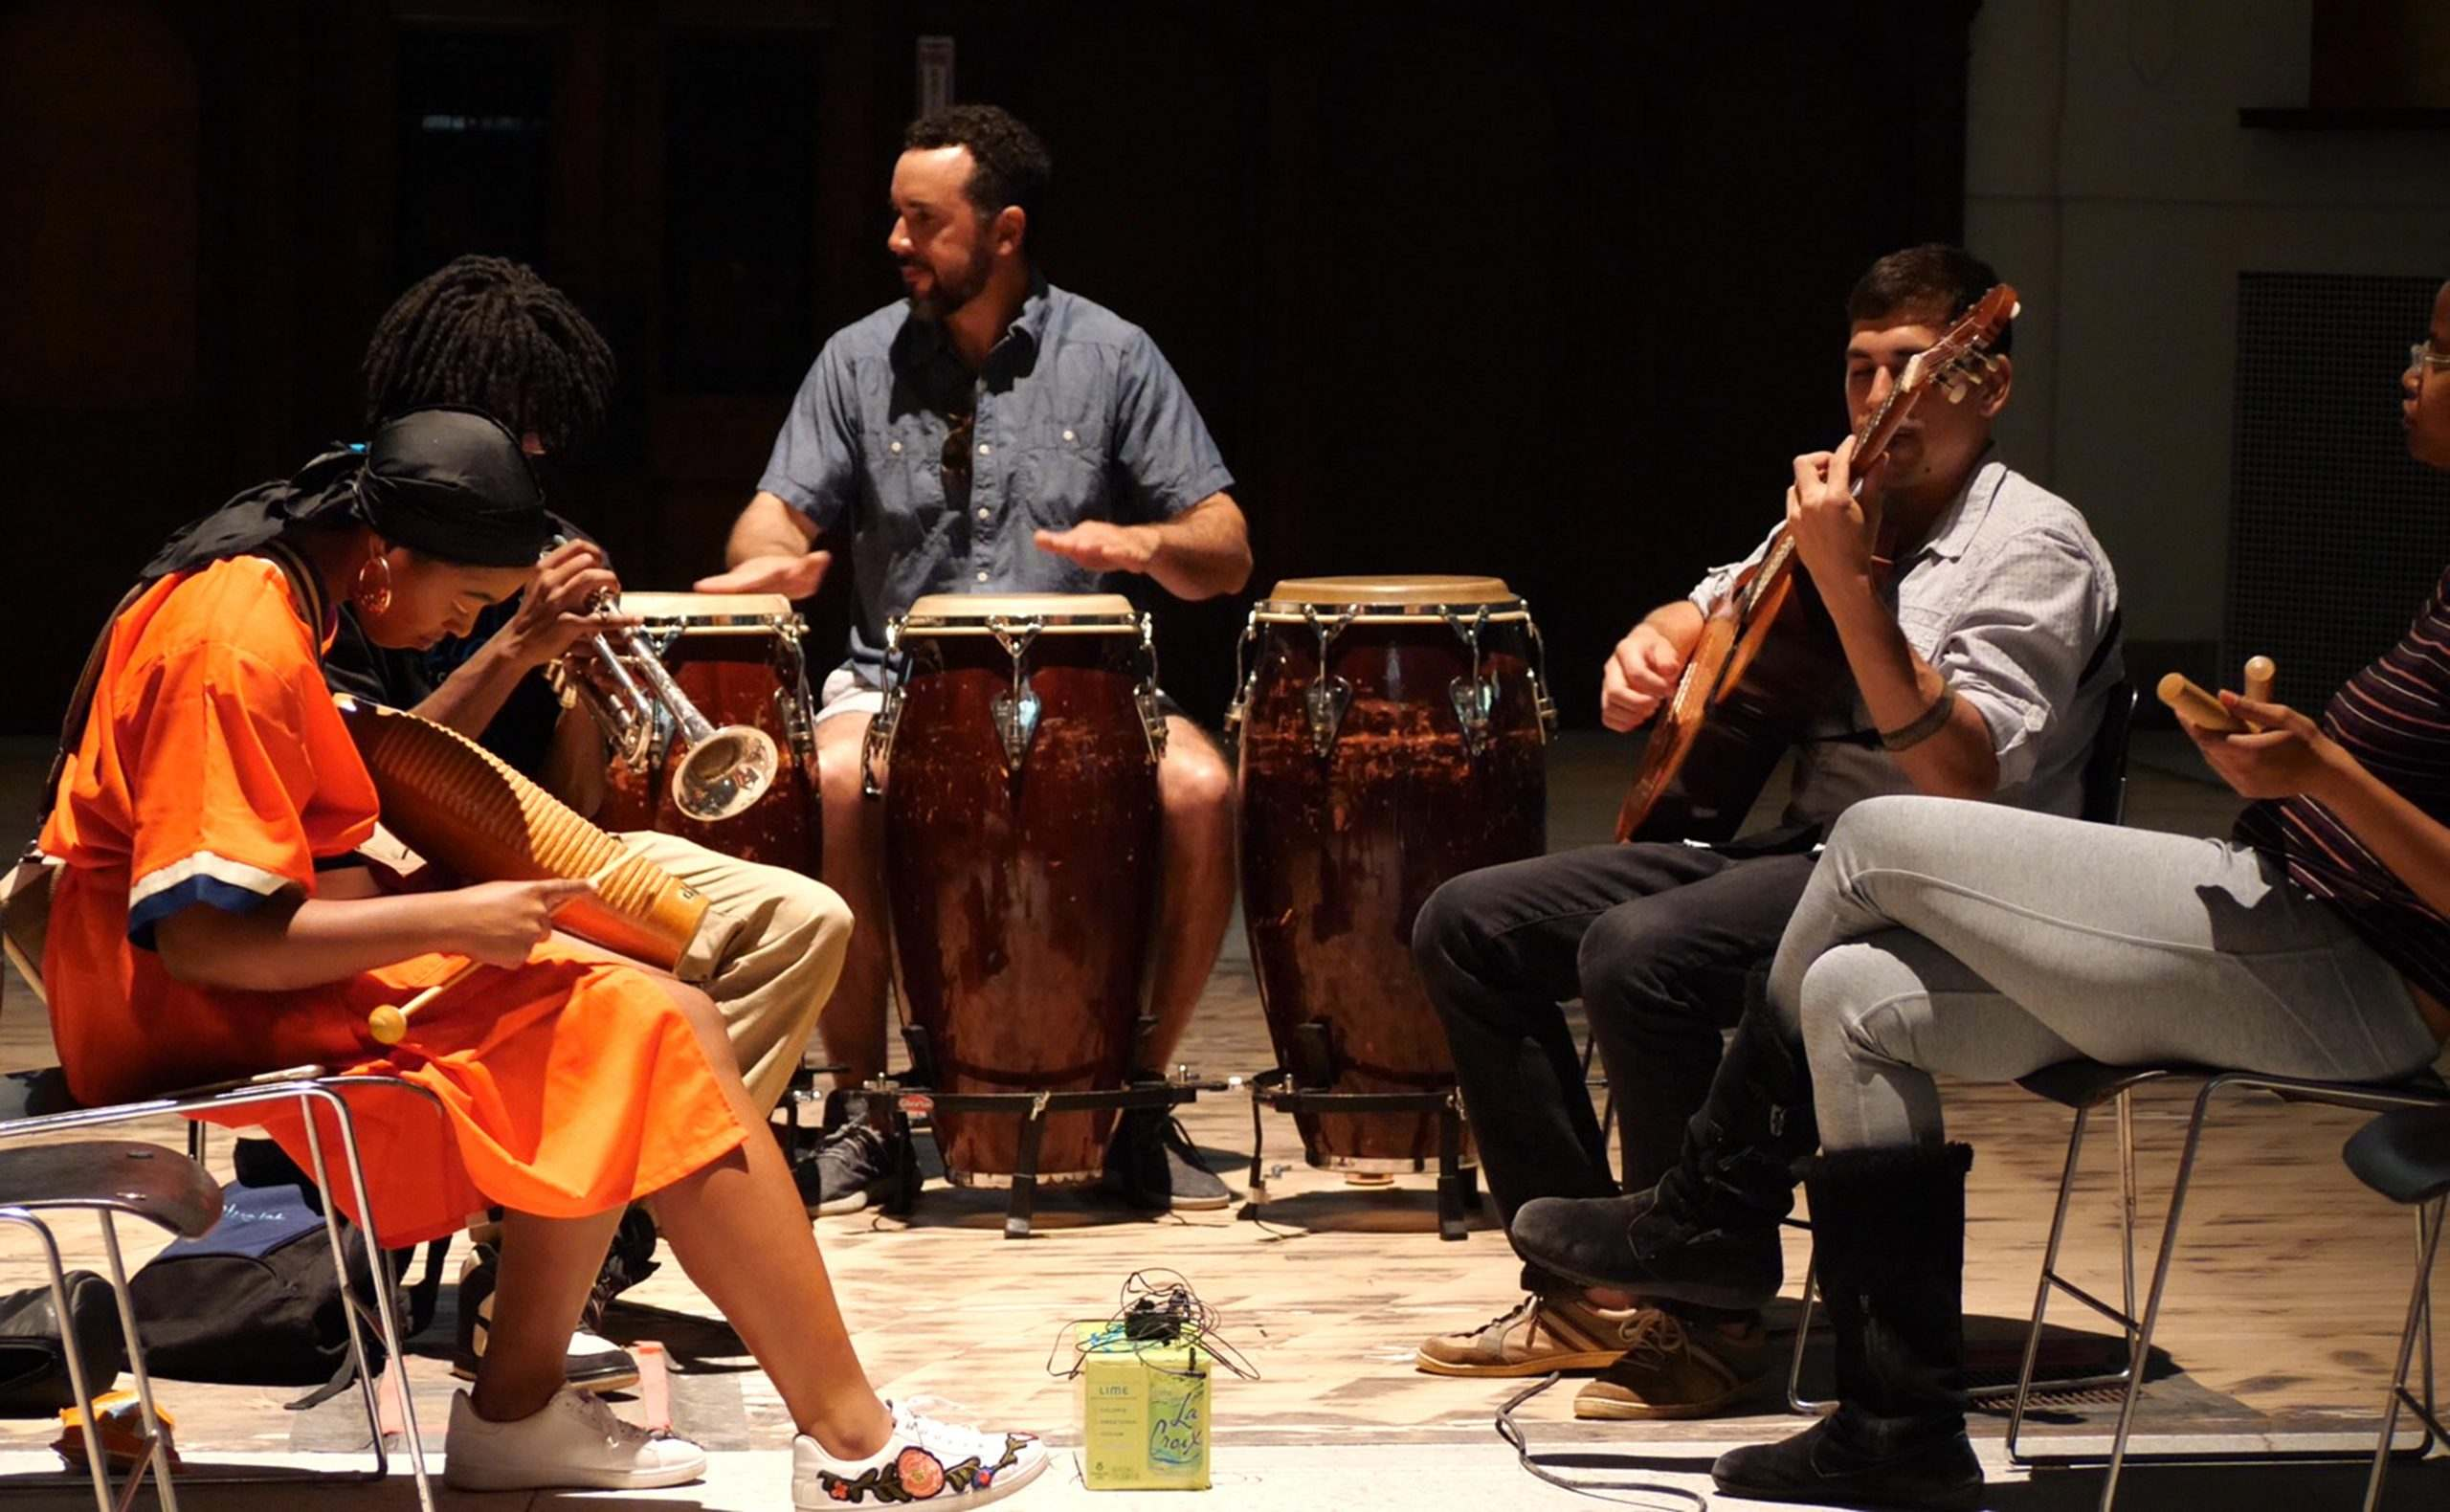 Alma(soul), performance by Susana Pilar and local musicians